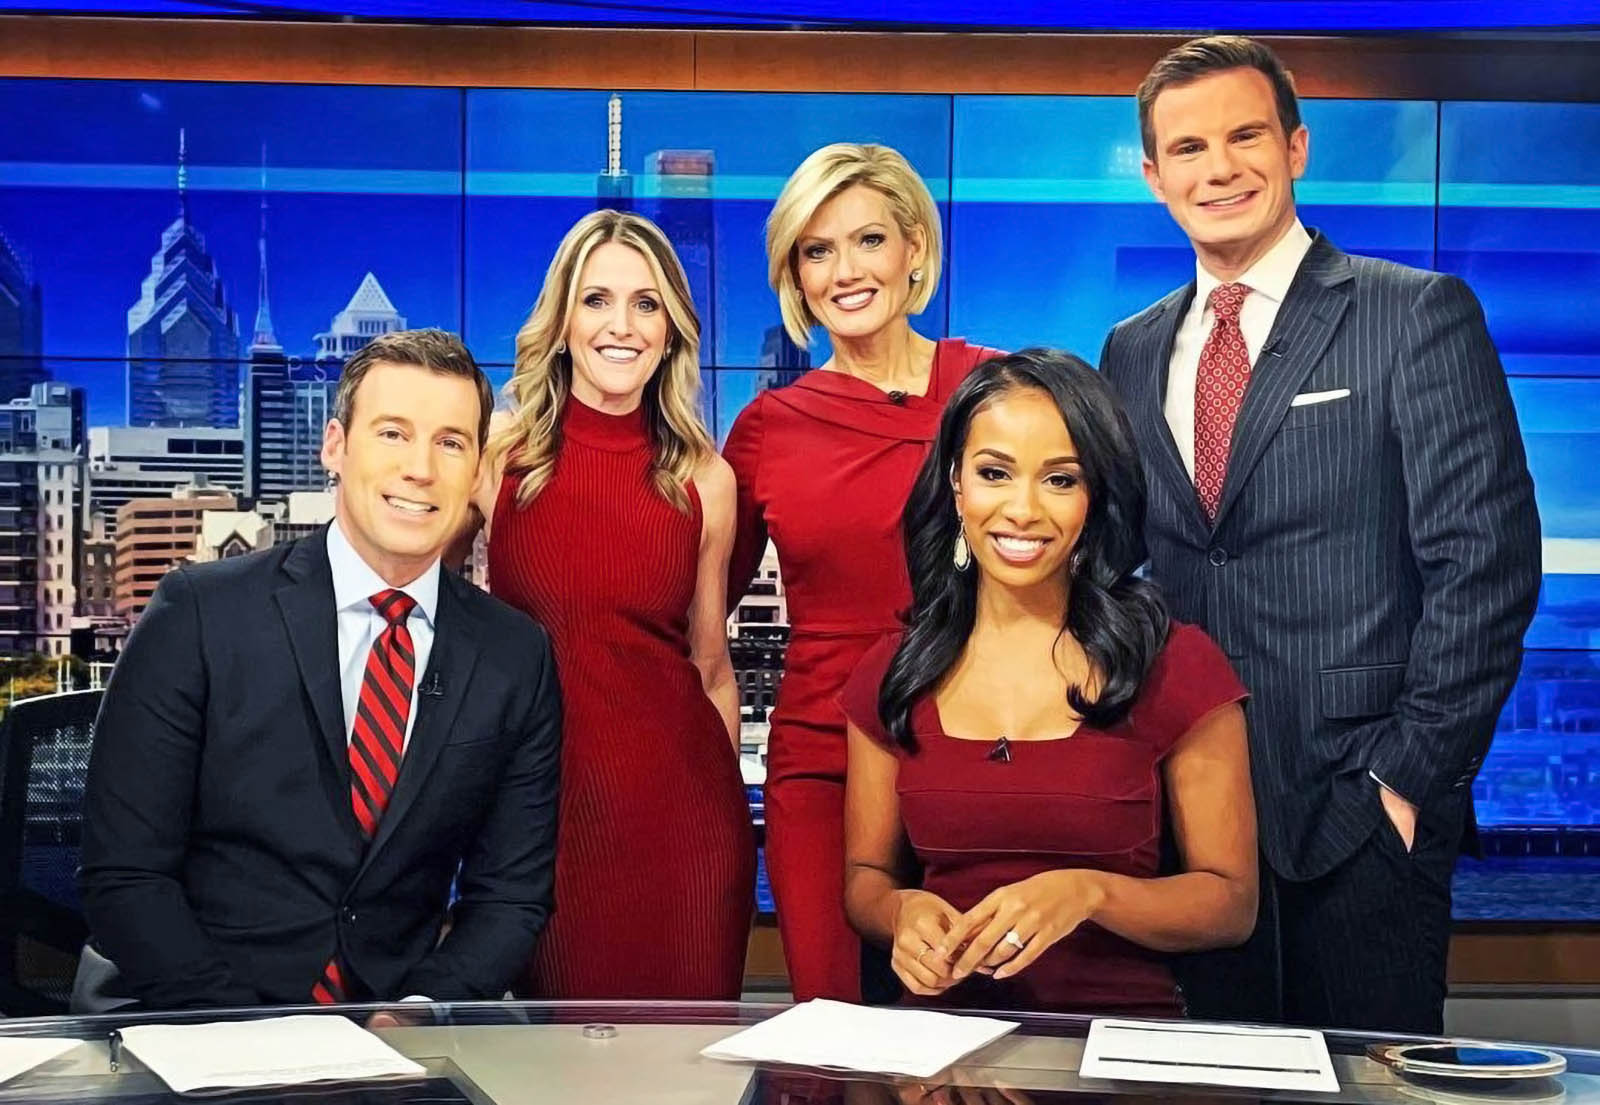 WPVI 6ABC News Philly newscasters